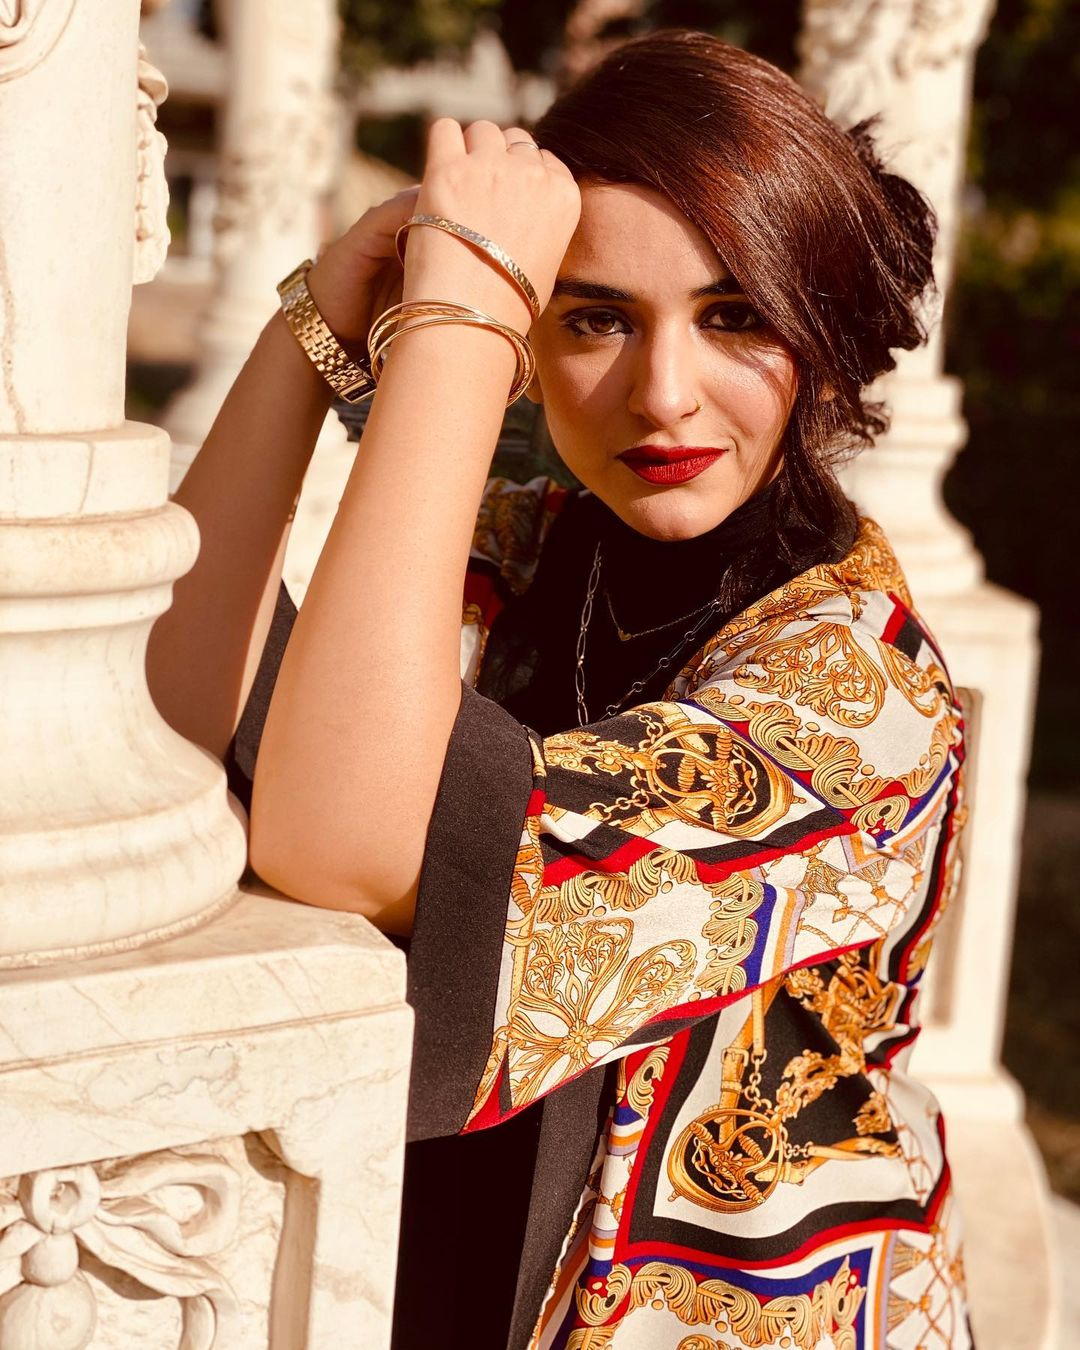 Yumna Zaidi – Complete Information - Age, Instagram, Personal Life